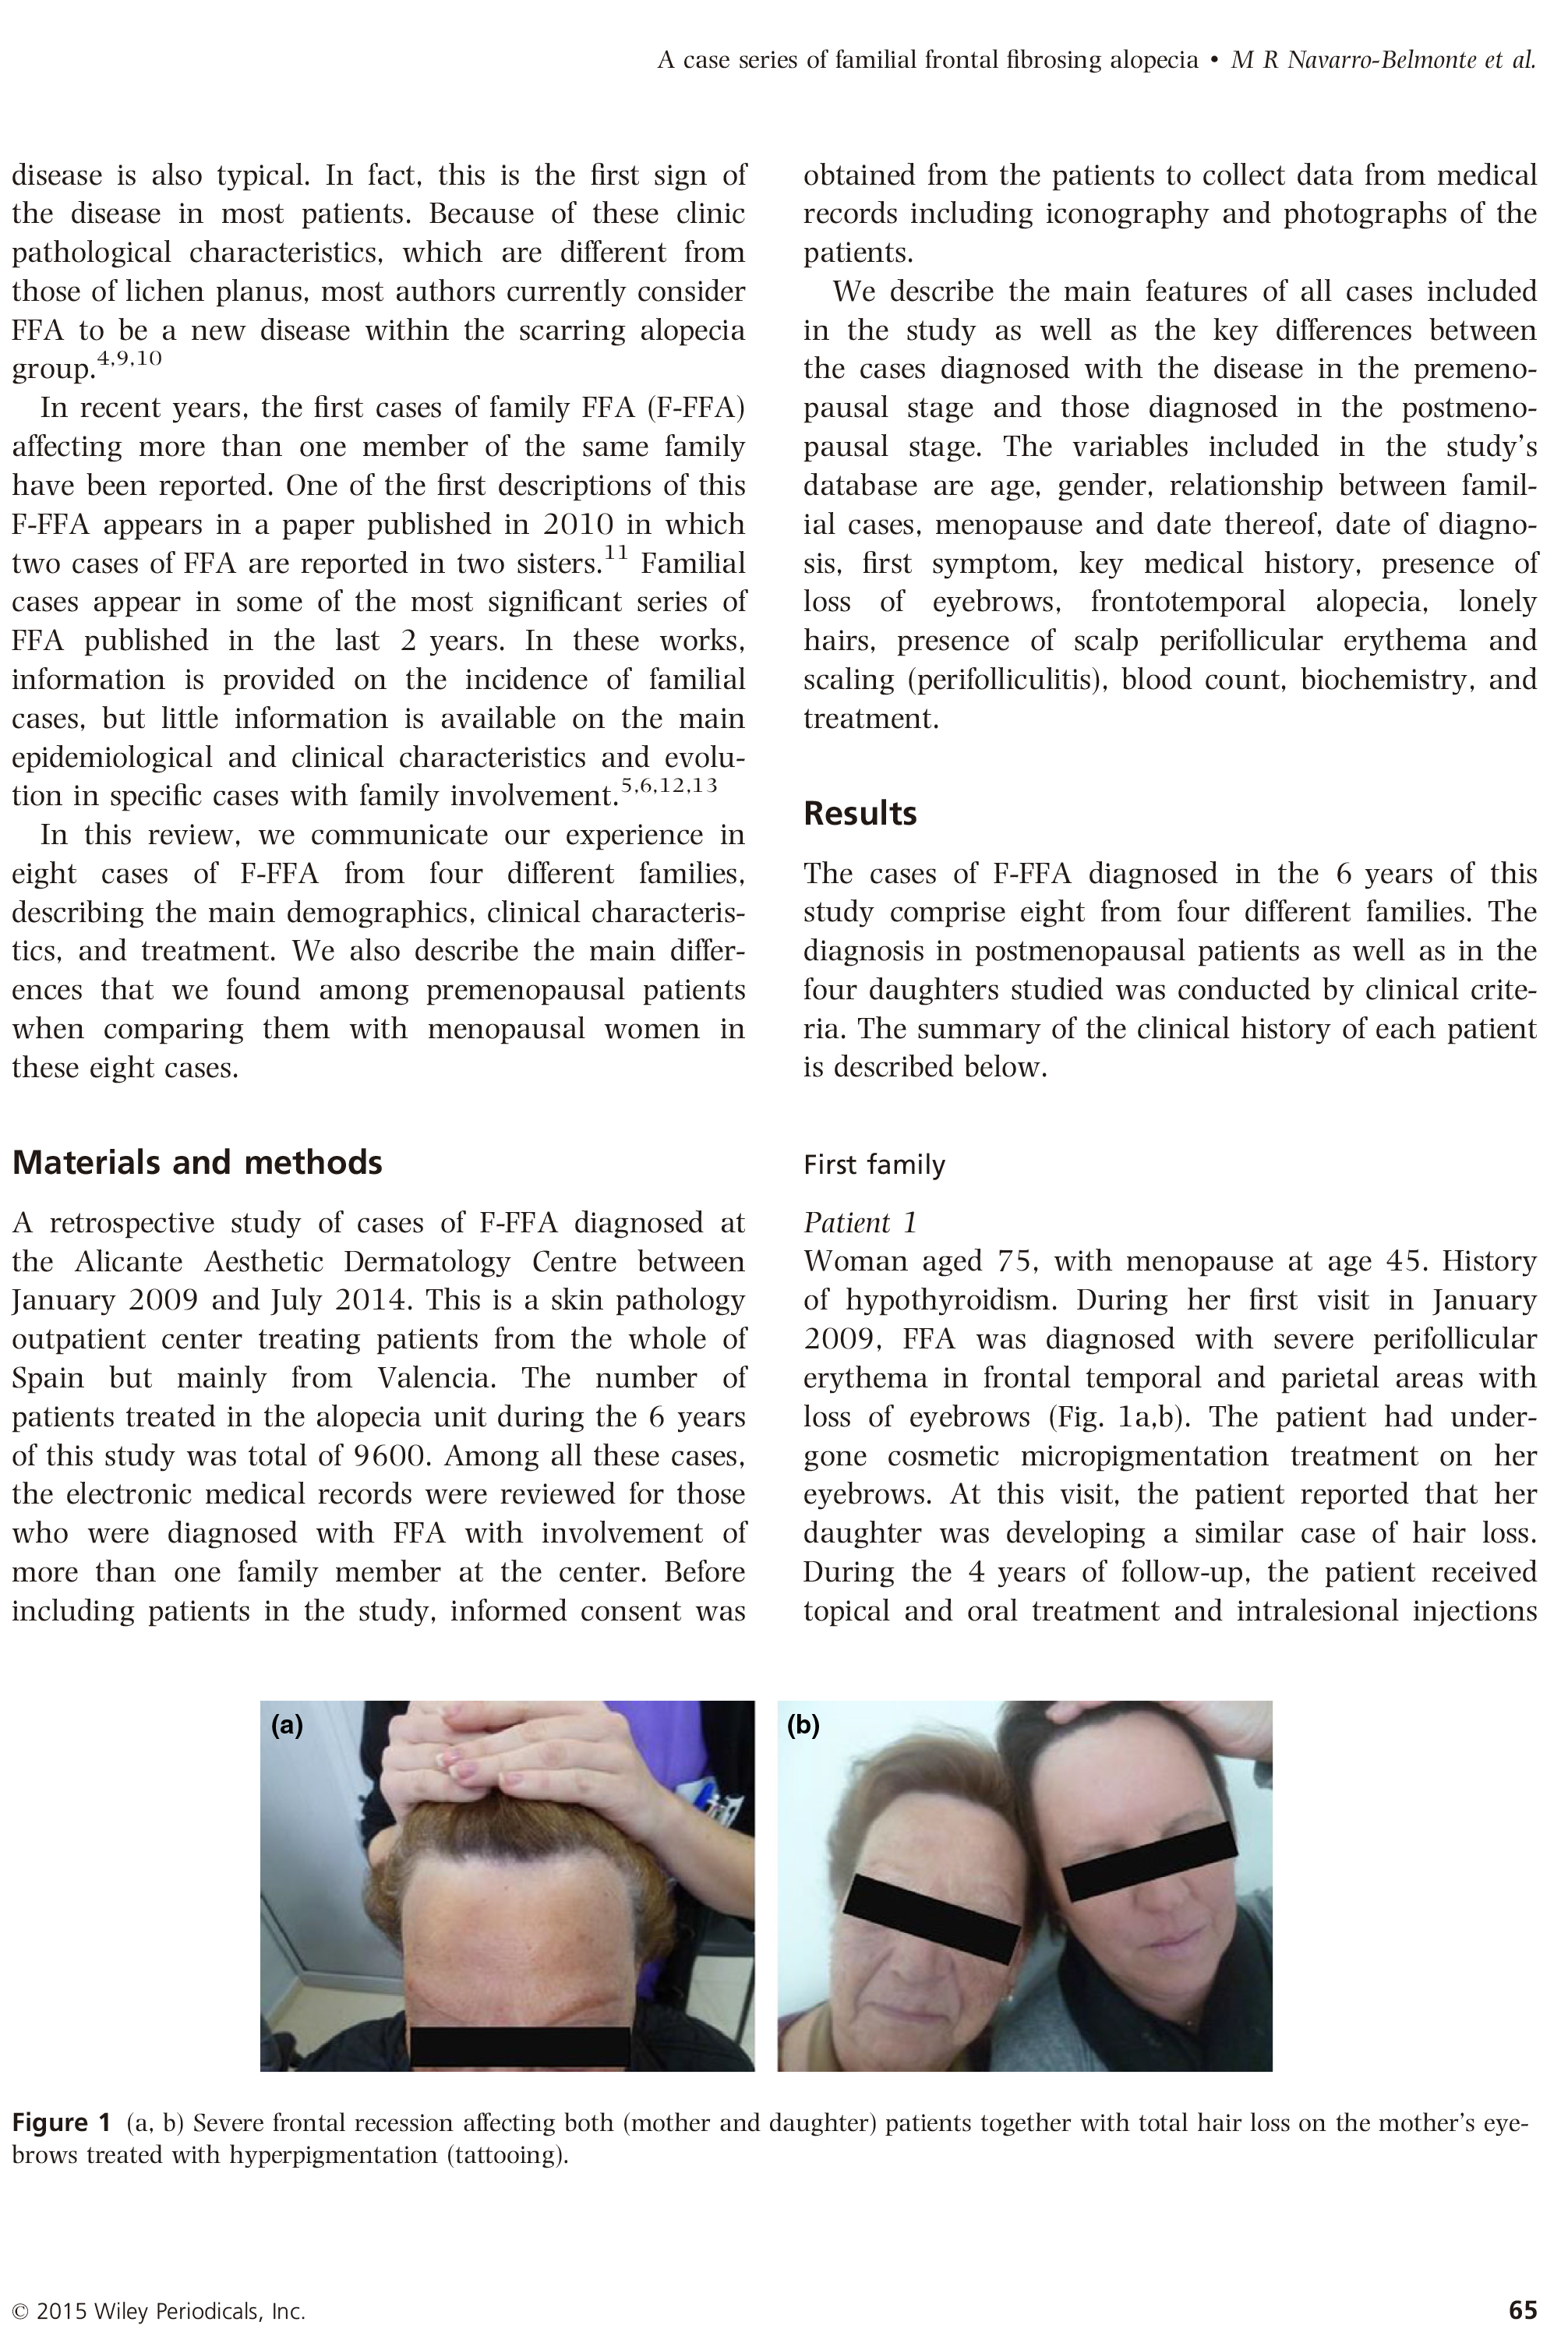 Case series of familial frontal fibrosing alopecia and a review